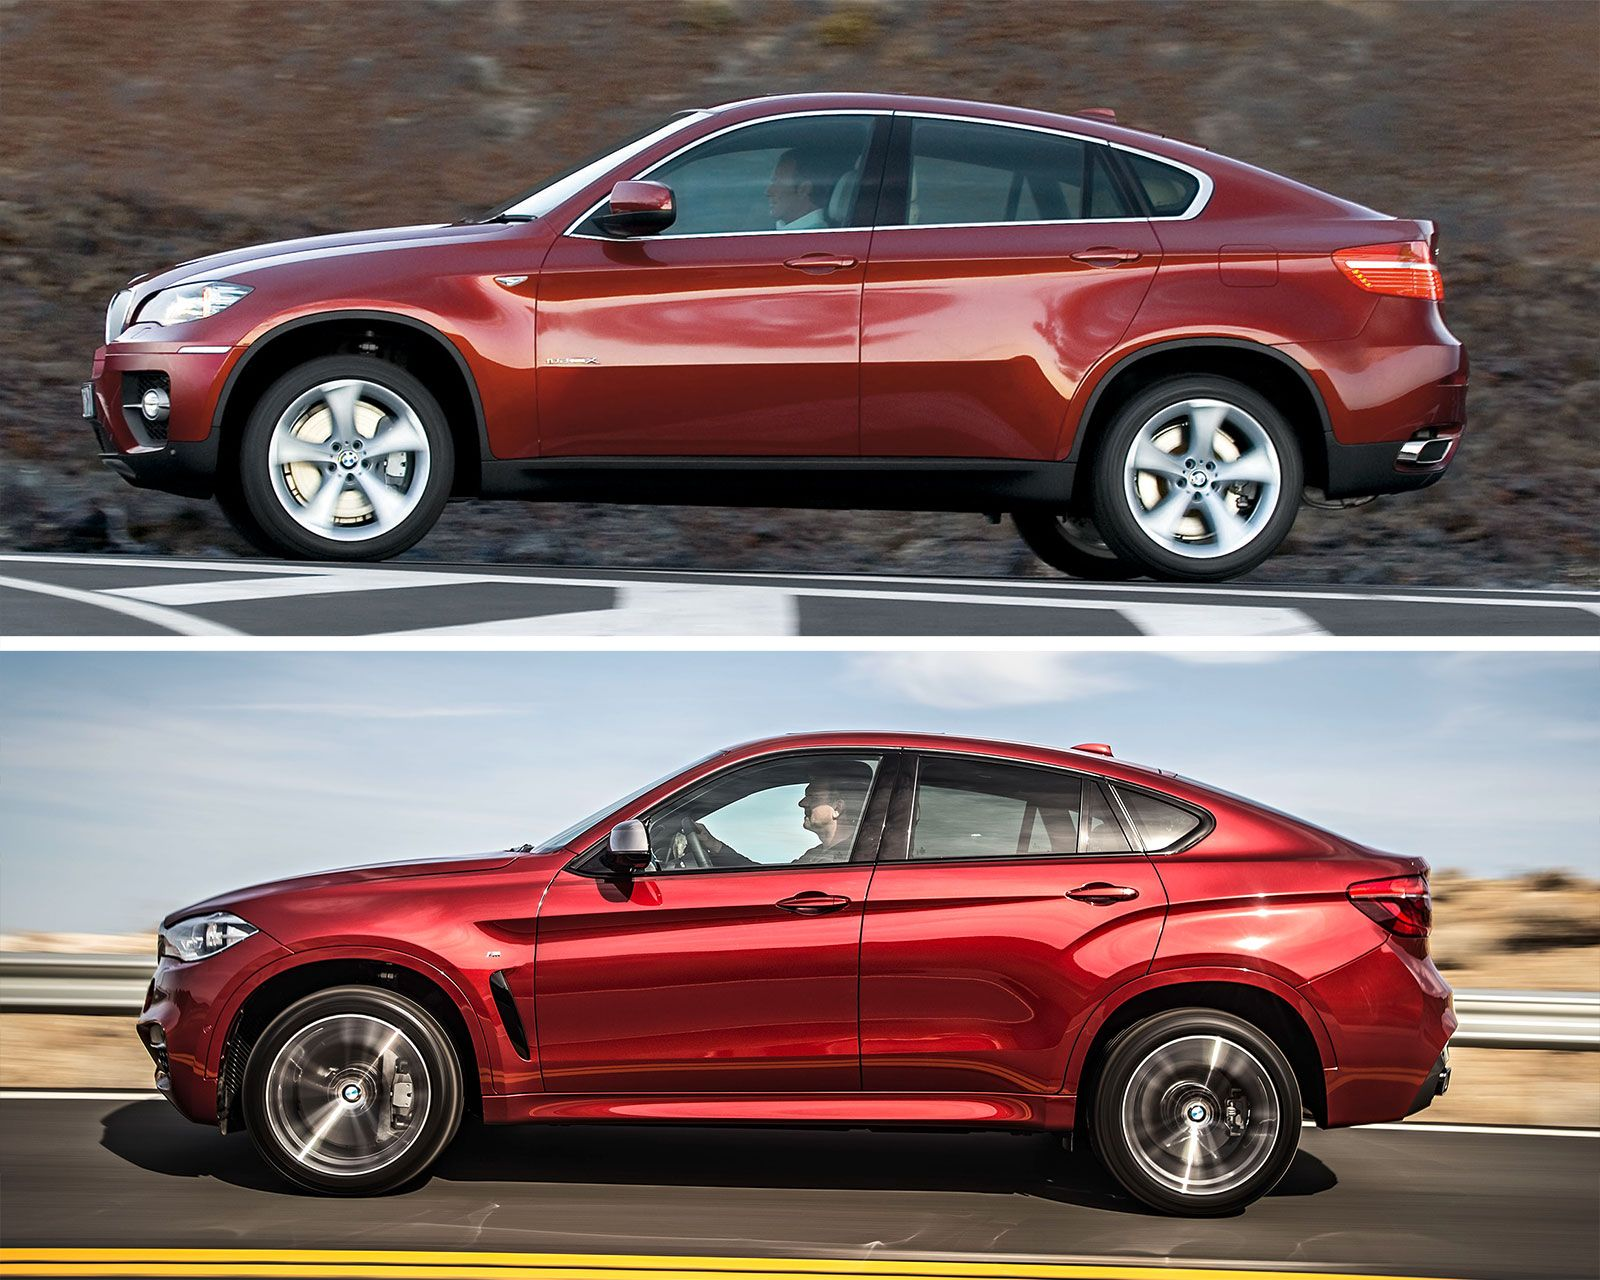 Bmw X6 1st And 2nd Generation Design Comparison Automotive And